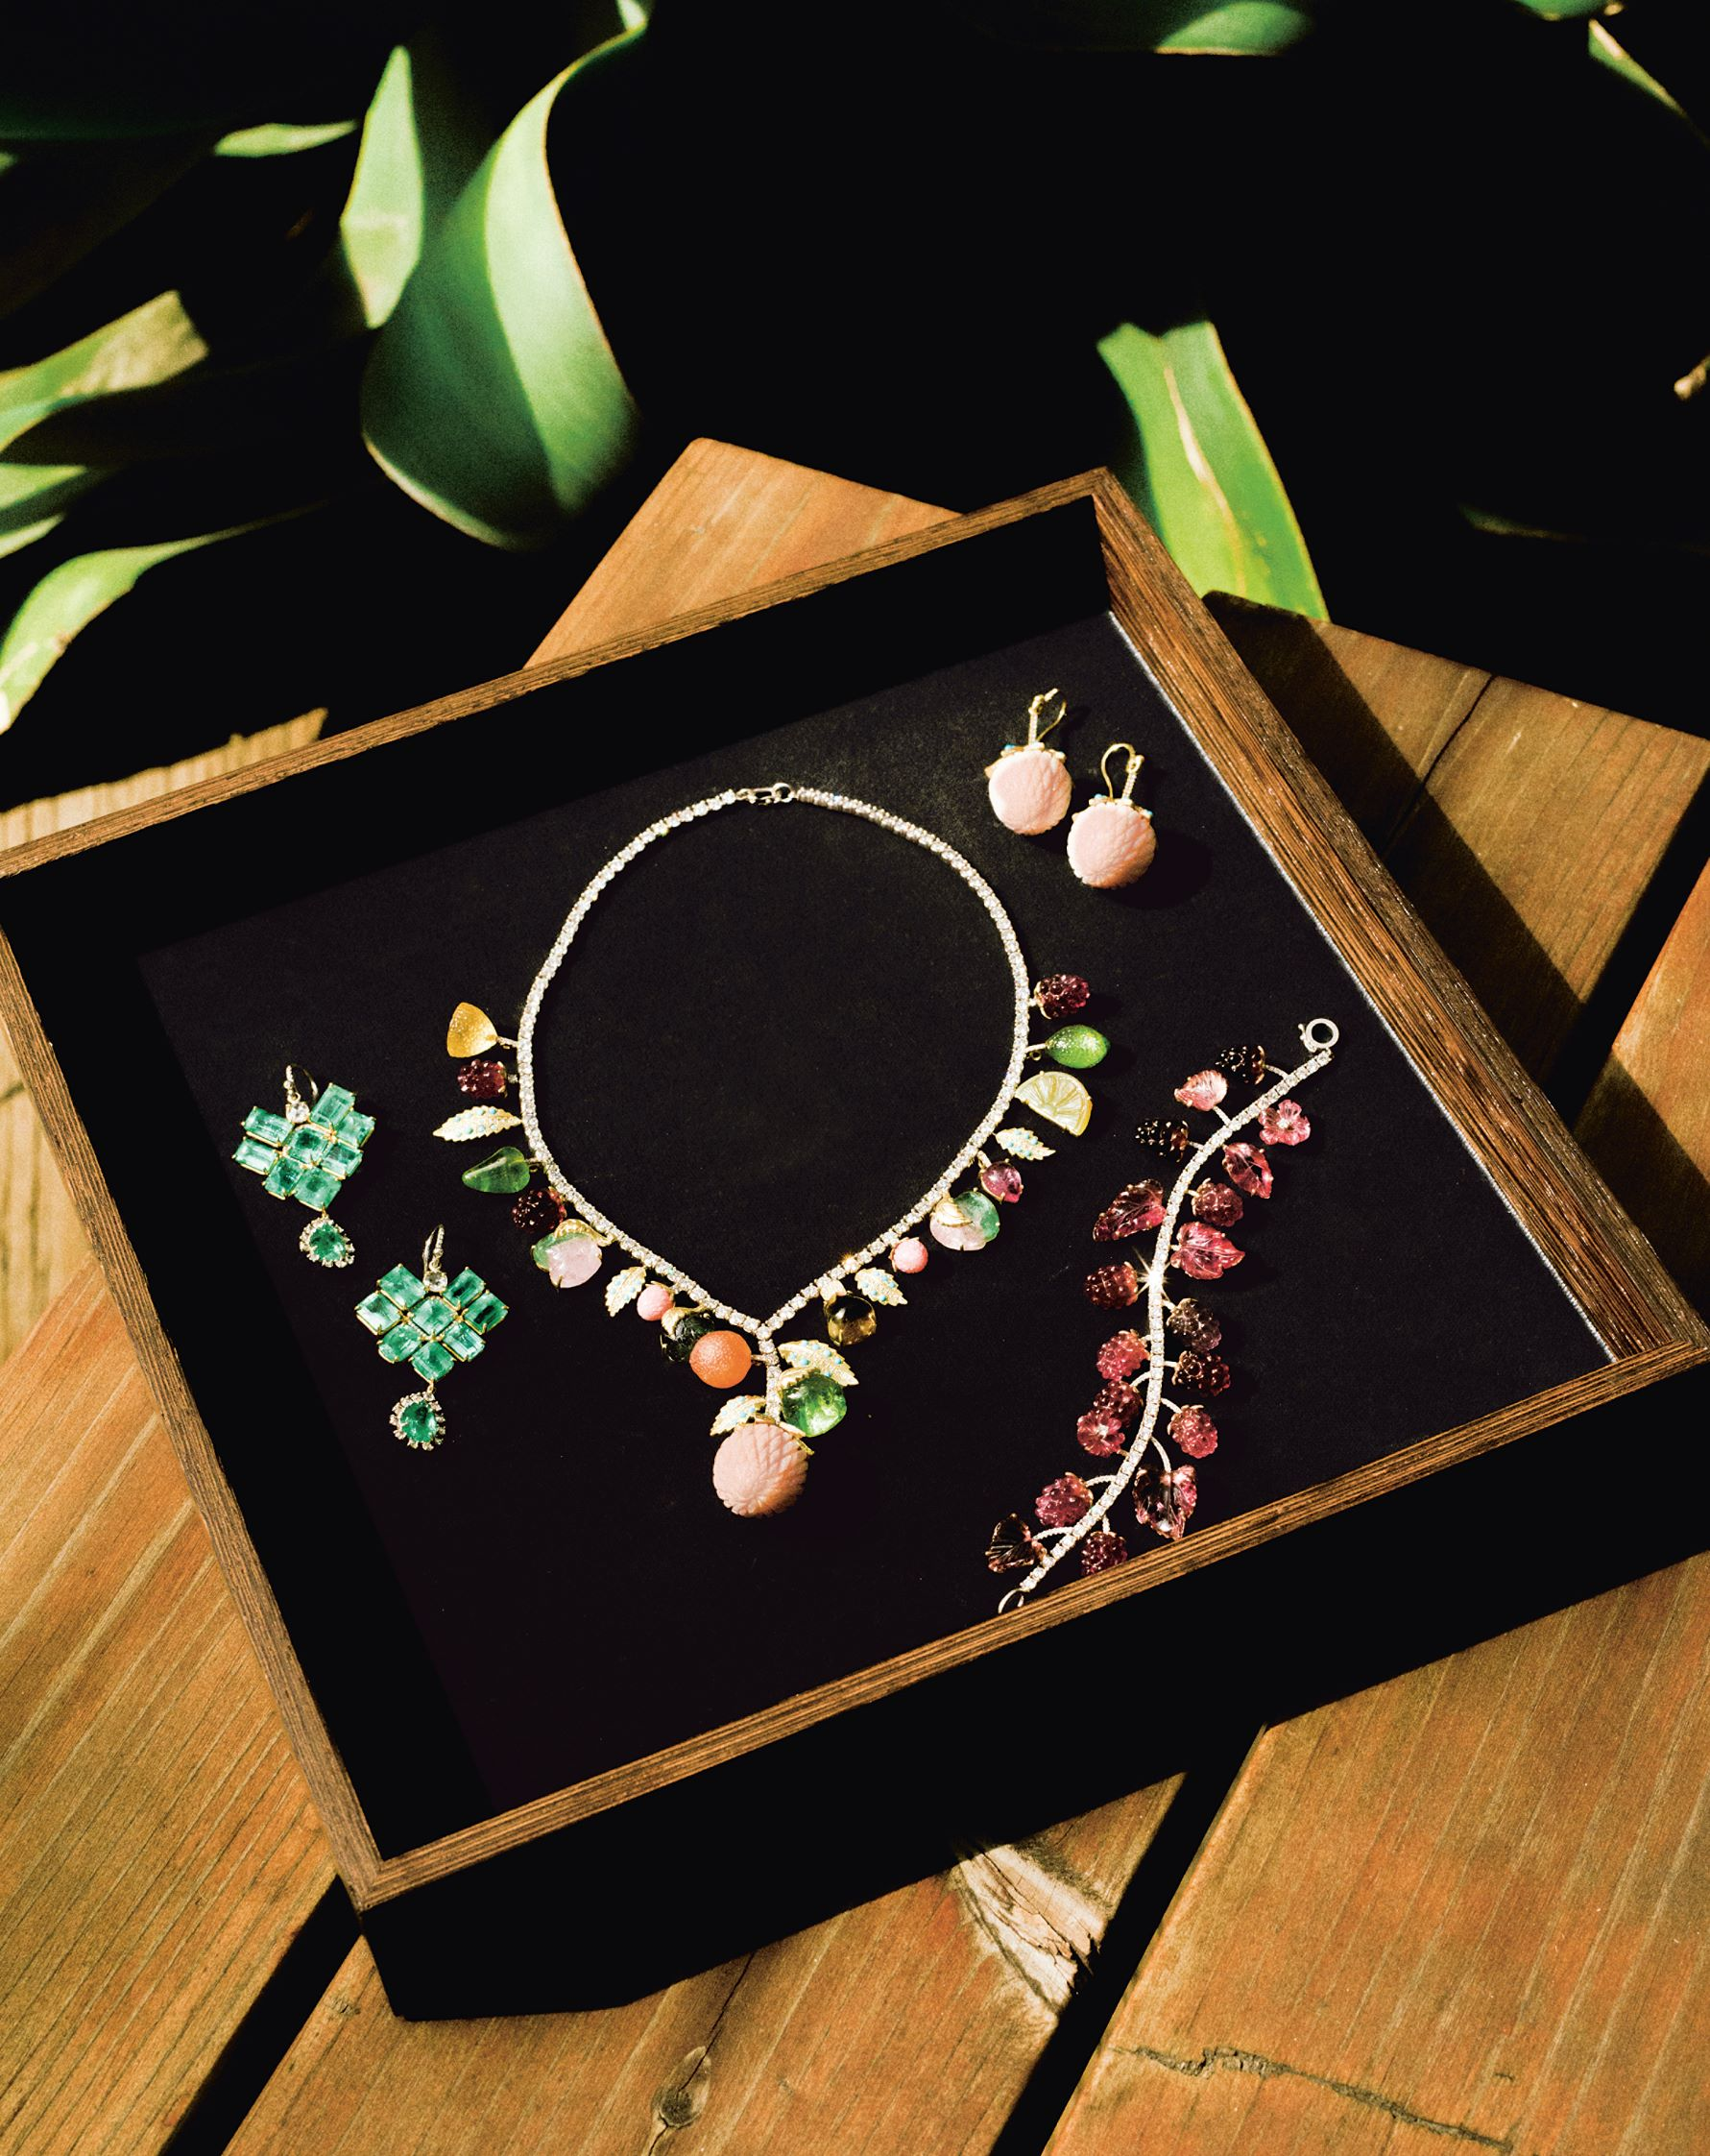 Irene Neuwirth's Green Emerald Diamond Gold Double Drop Earrings with One of a Kind Fruit Punch Diamond Necklace, Carved Opal Strawberry Earrings, and One of a Kind Pink Tourmaline and Diamond Raspberry bracelet. Photo by Chantal Anderson